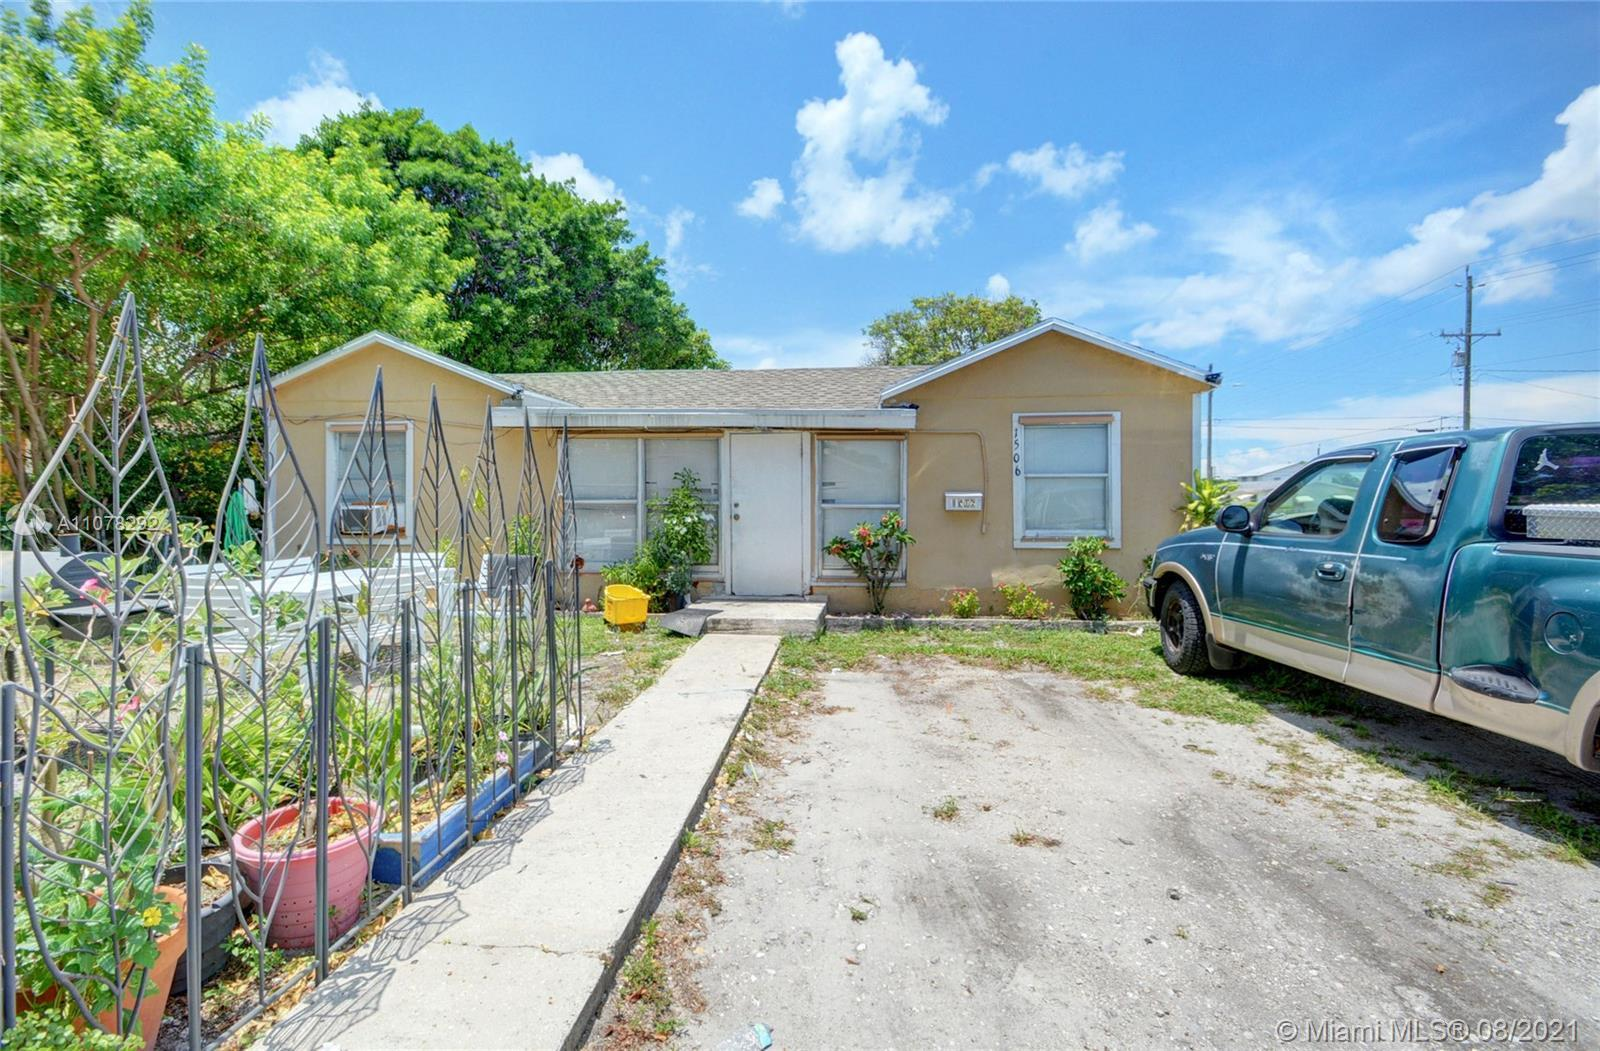 Wonderful Single family for sale, 3 bedrooms 2 bathrooms, the house has a new roof, the bathrooms ar